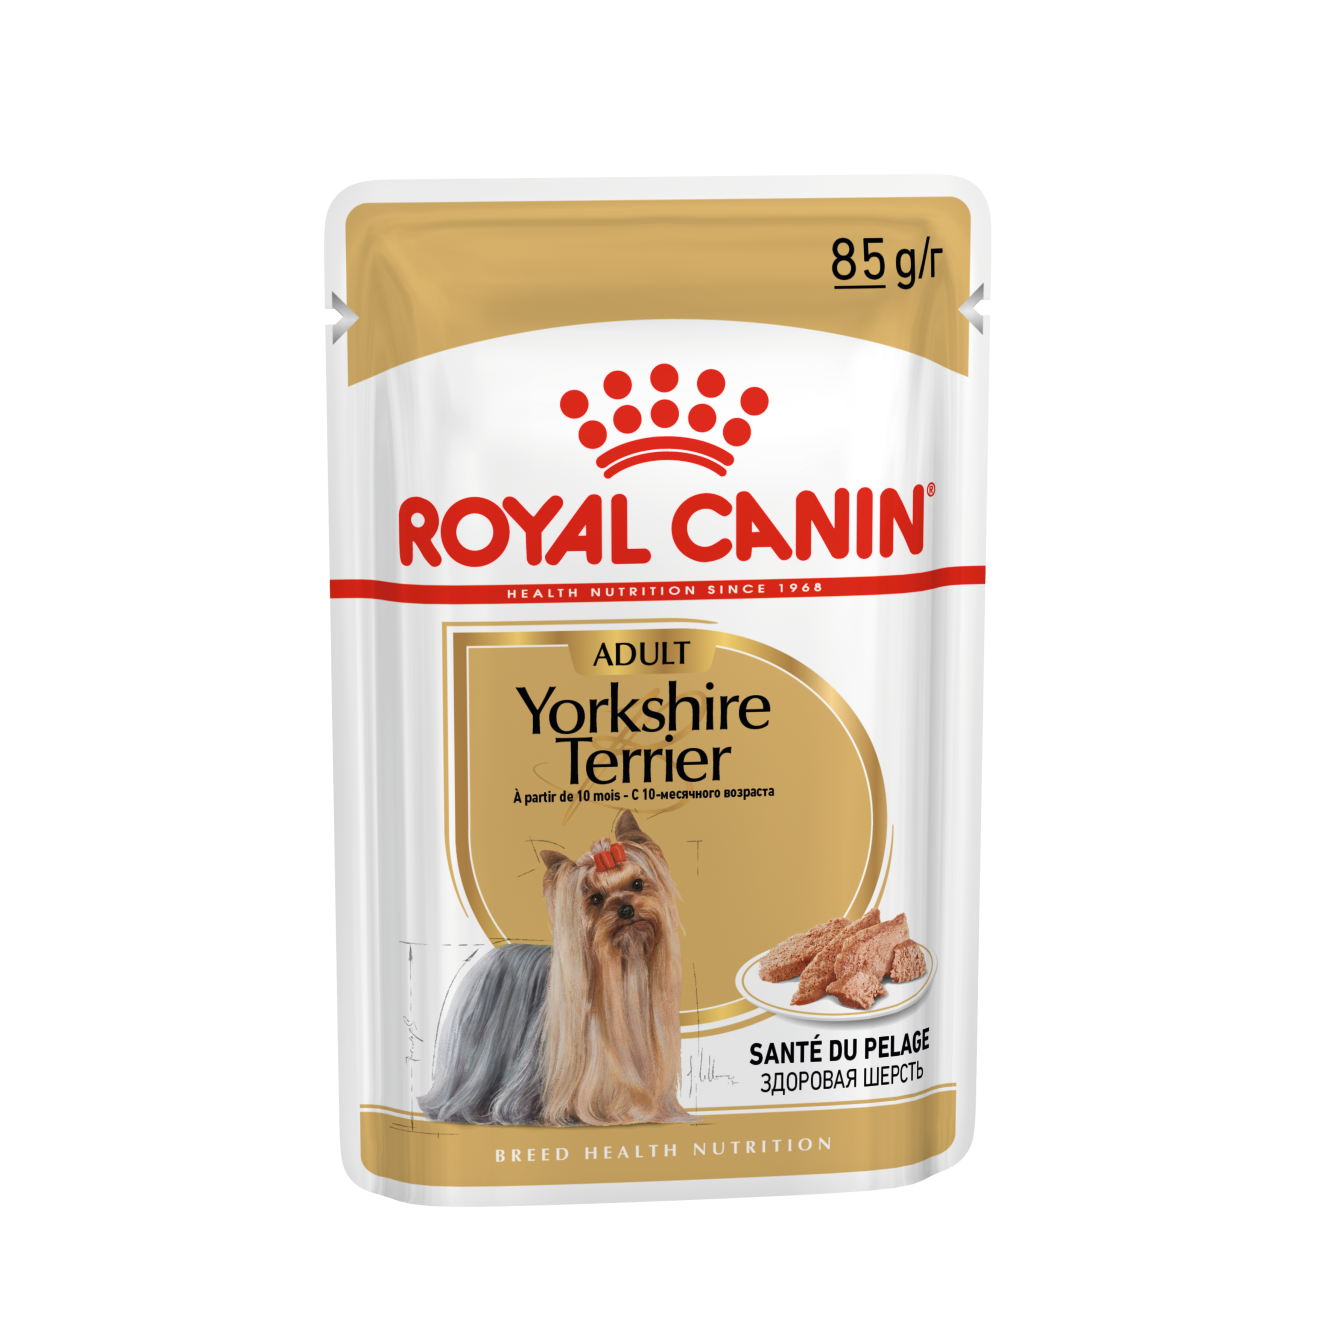 ROYAL CANIN Yorkshire Terrier - консервы для собак - Йоркширский Терьер, паштет, в/у 85г